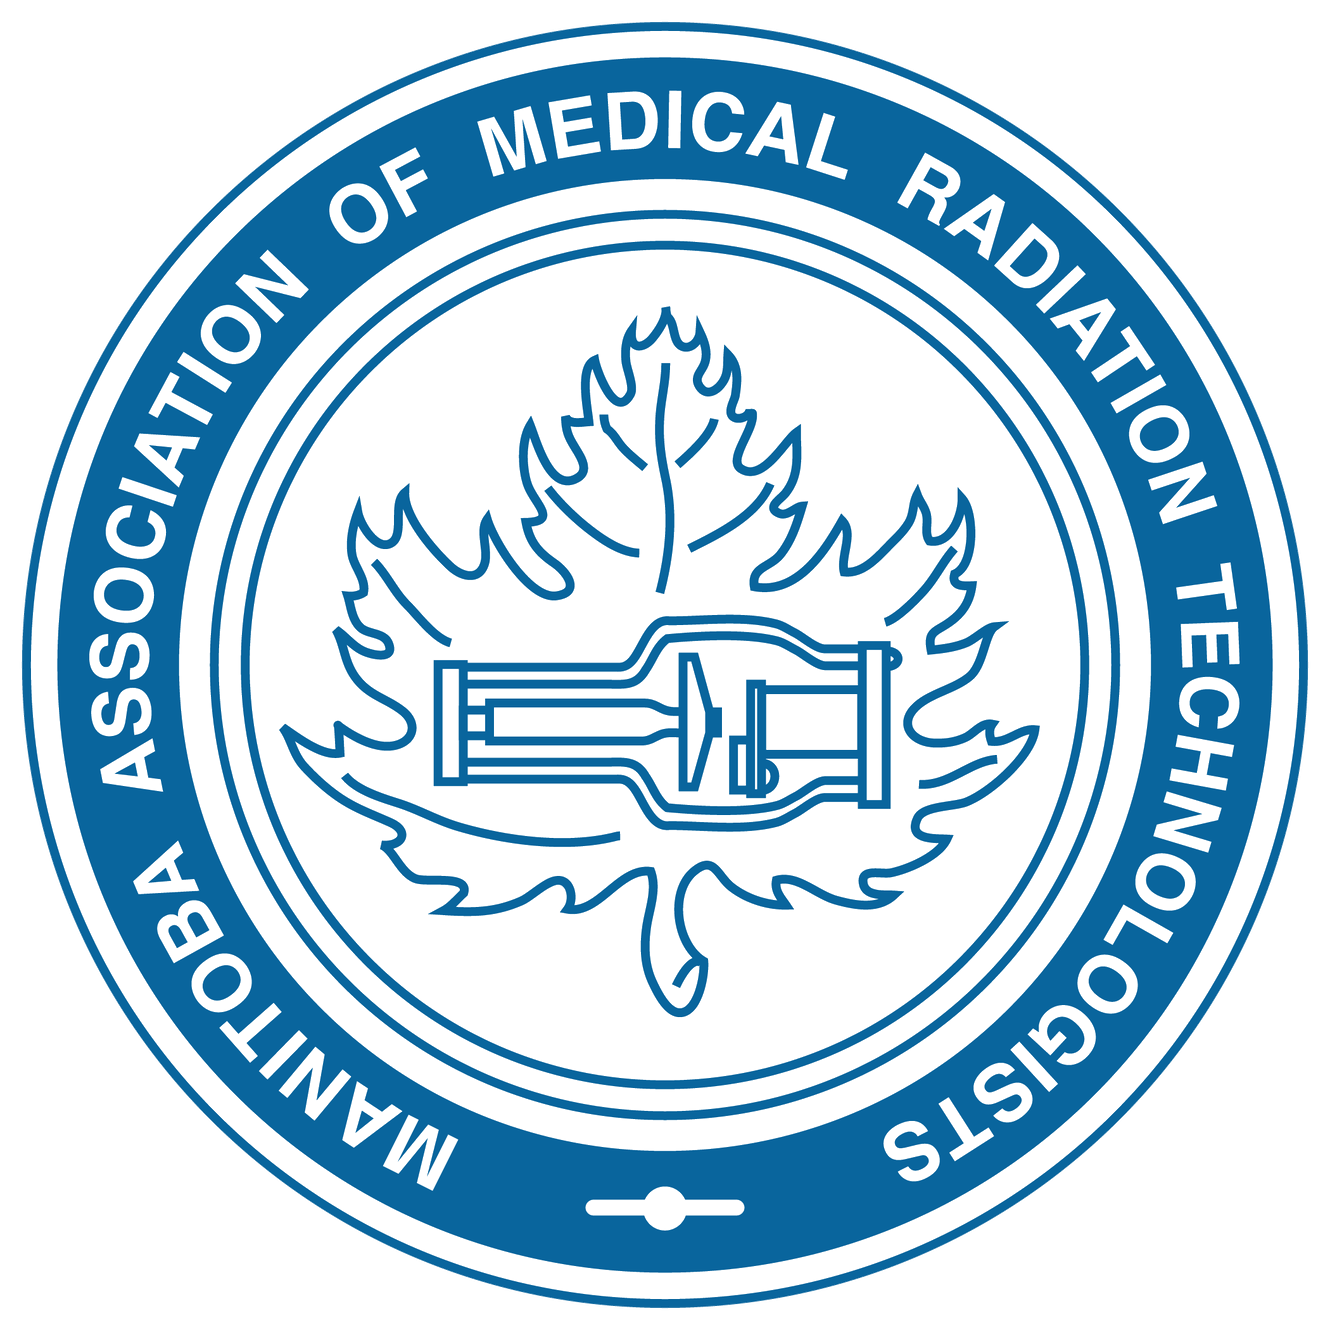 Manitoba Association of Medical Radiation Technologists